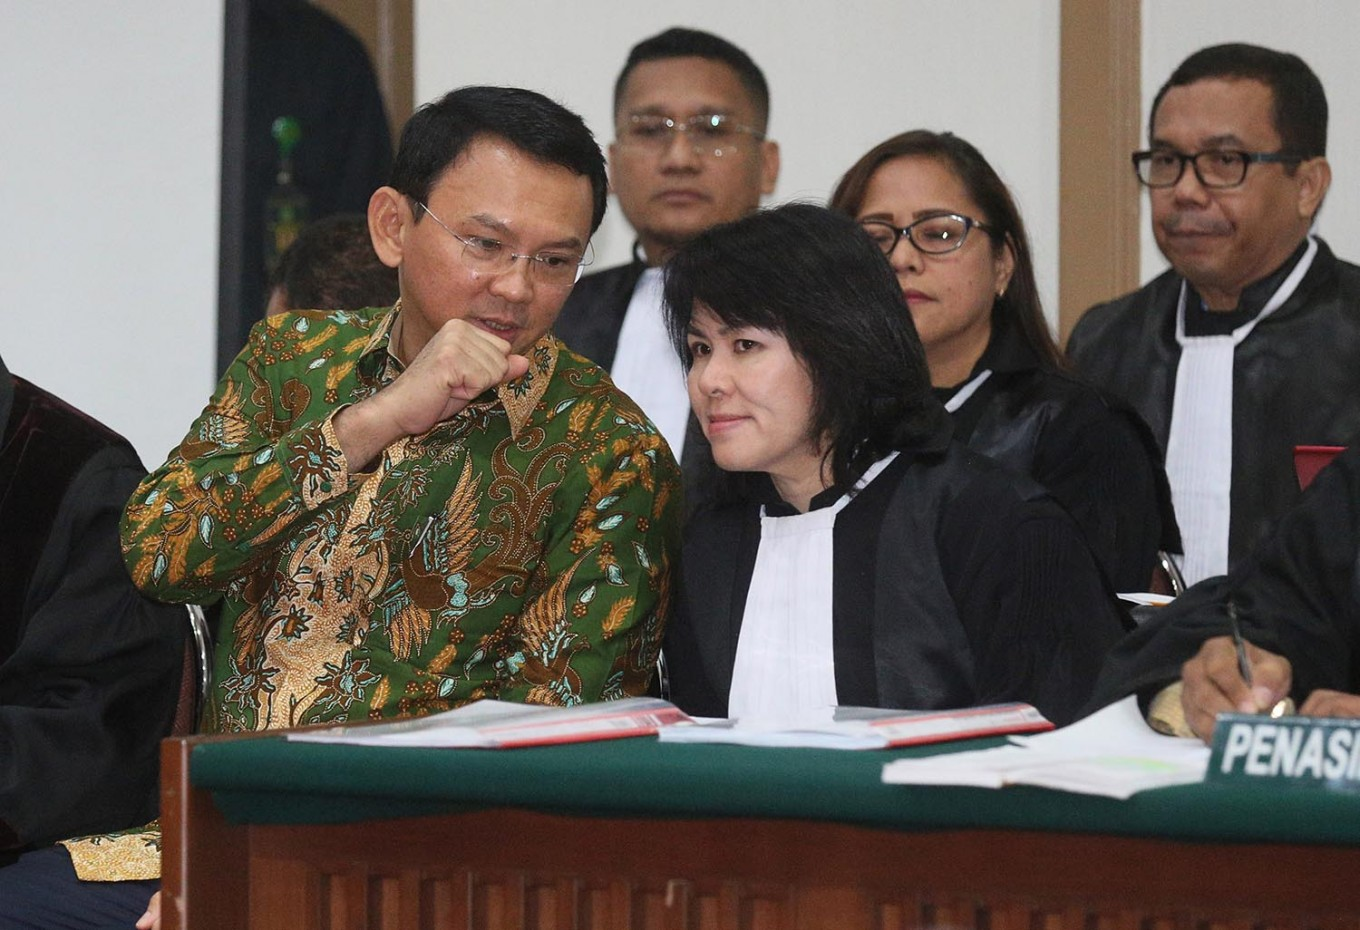 ahok s speech not blasphemous expert